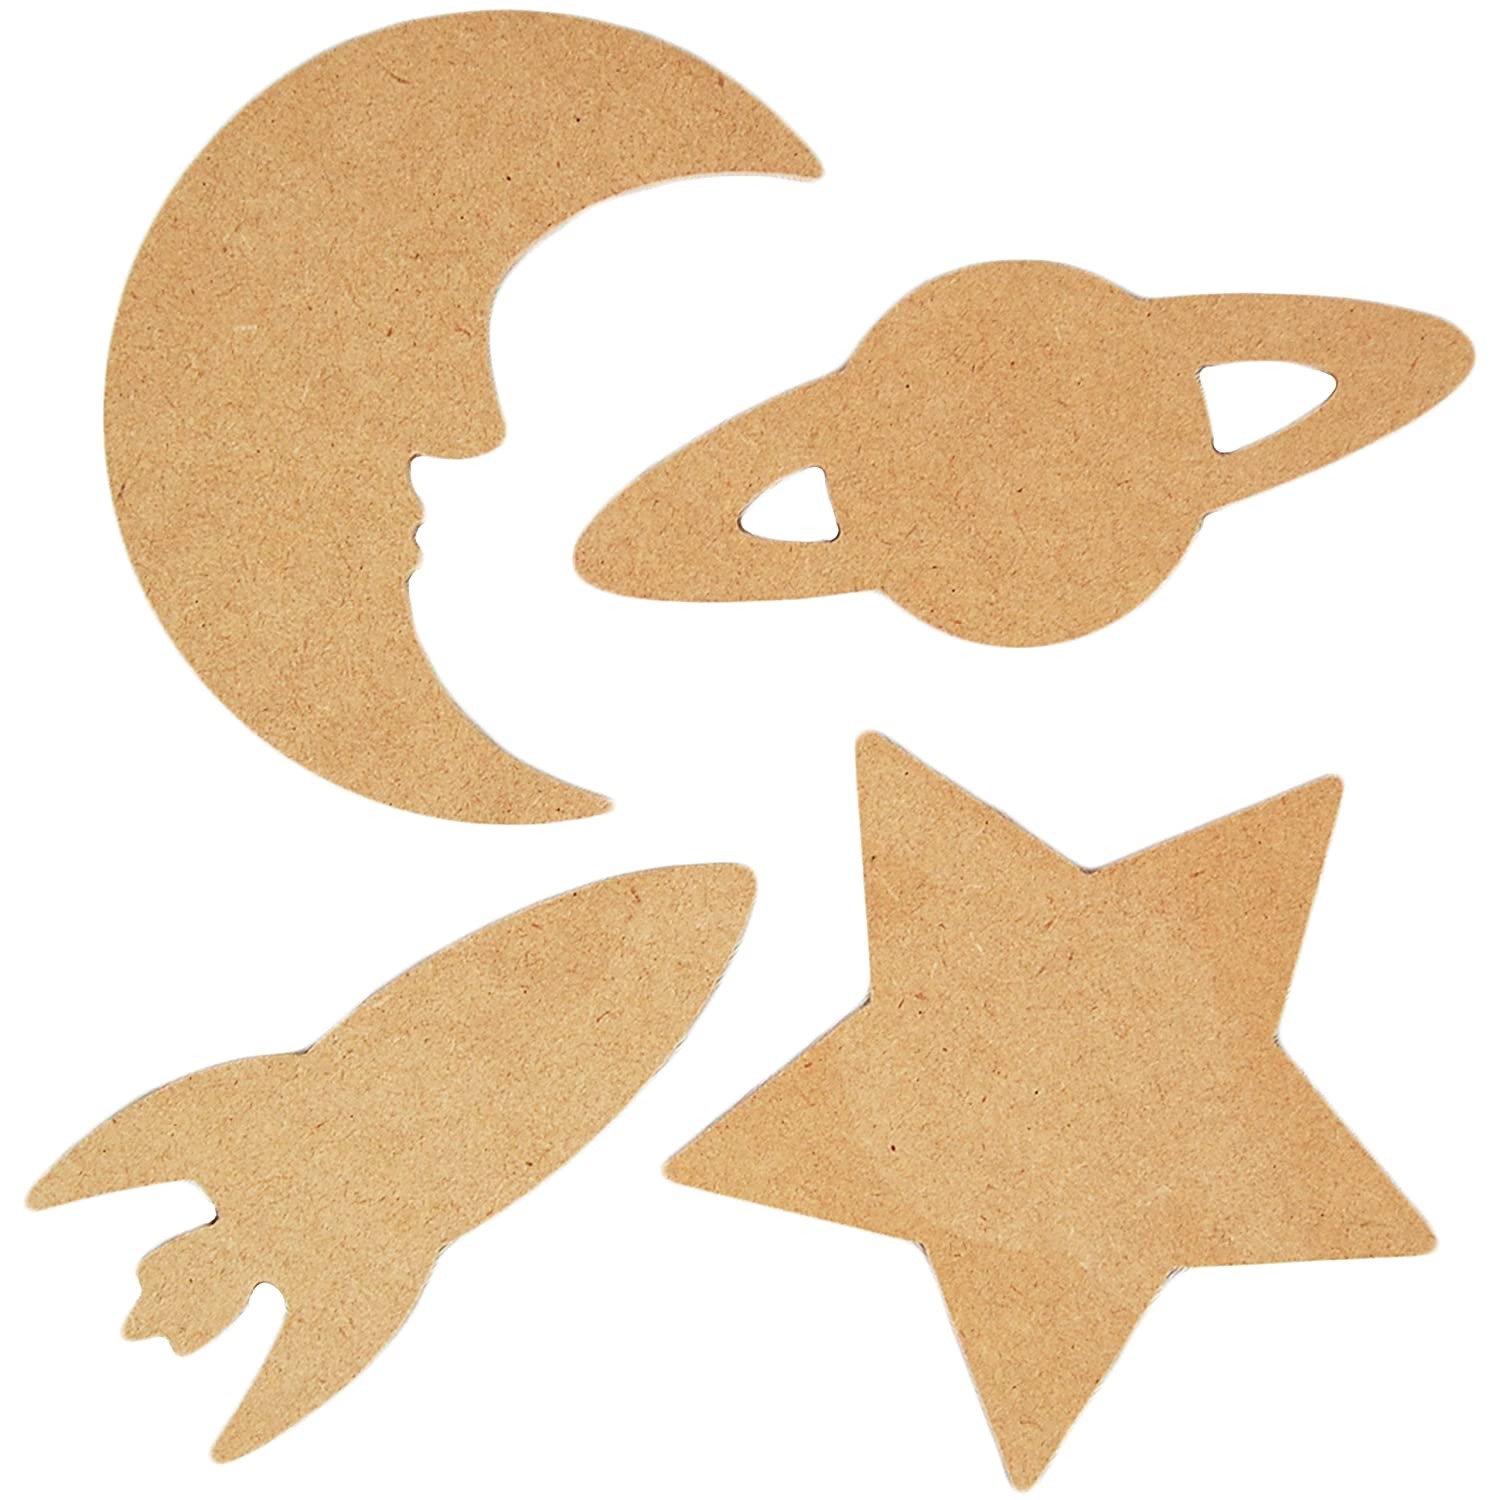 Country Love Crafts 4 Space Themed Wooden Craft Blanks, Light Brown CLW0018